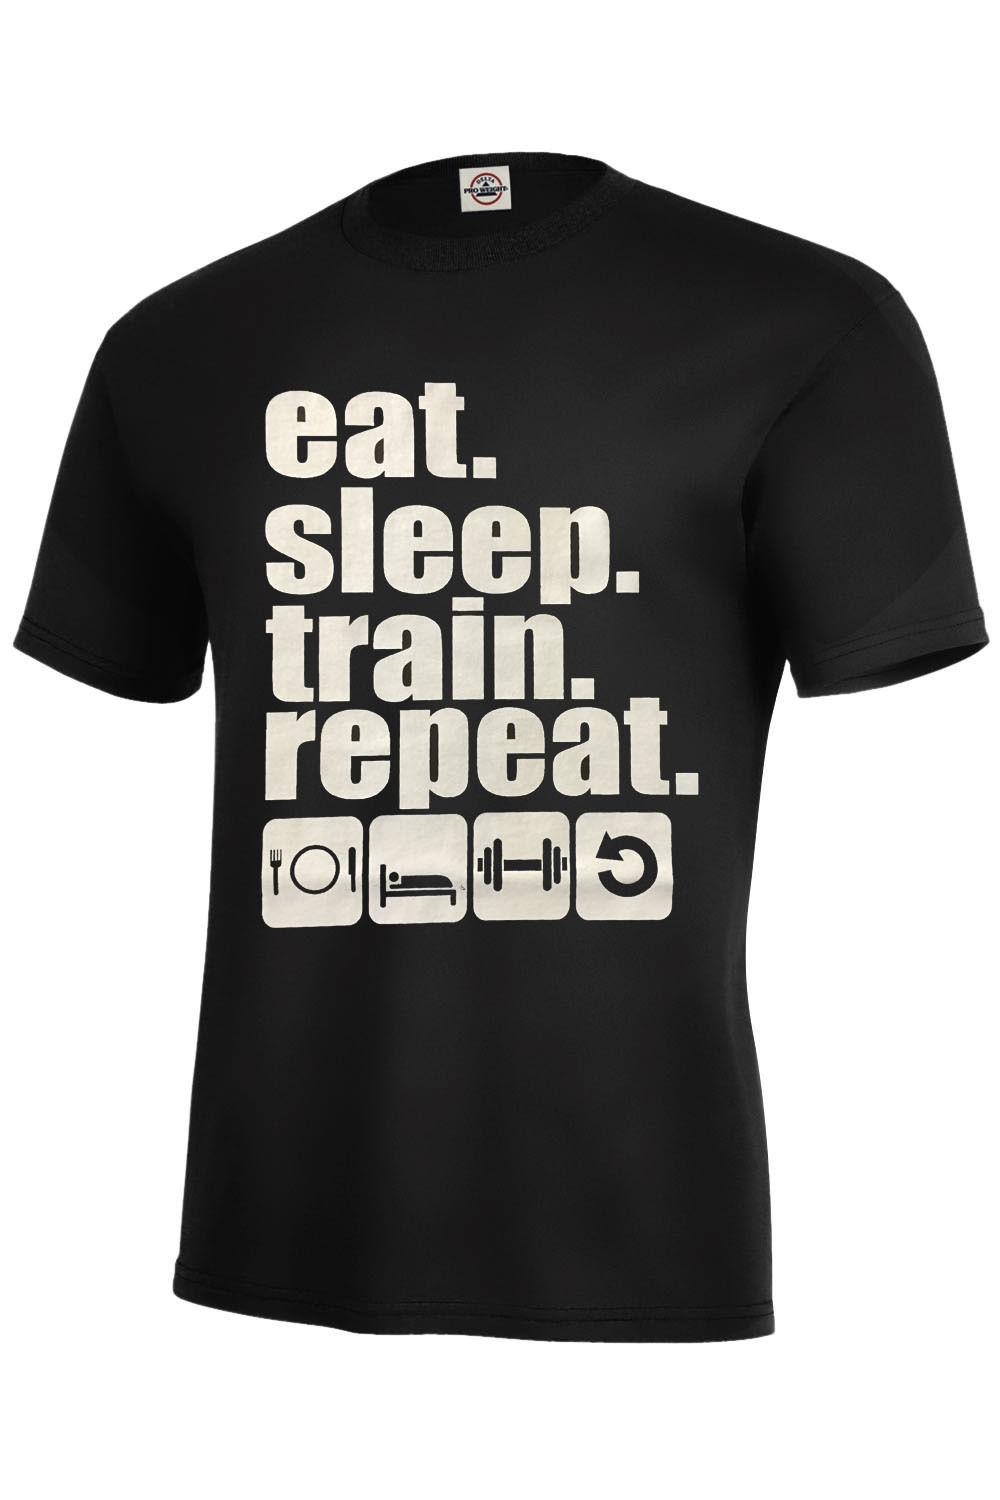 47229a22408 Eat Sleep Train Repeat Men S Gym T Shirt ASSORTED COLORS BEST Unisex Funny  Gift Casual Tee Tees Shirts Cheap Design And Buy T Shirts From Lukehappy12